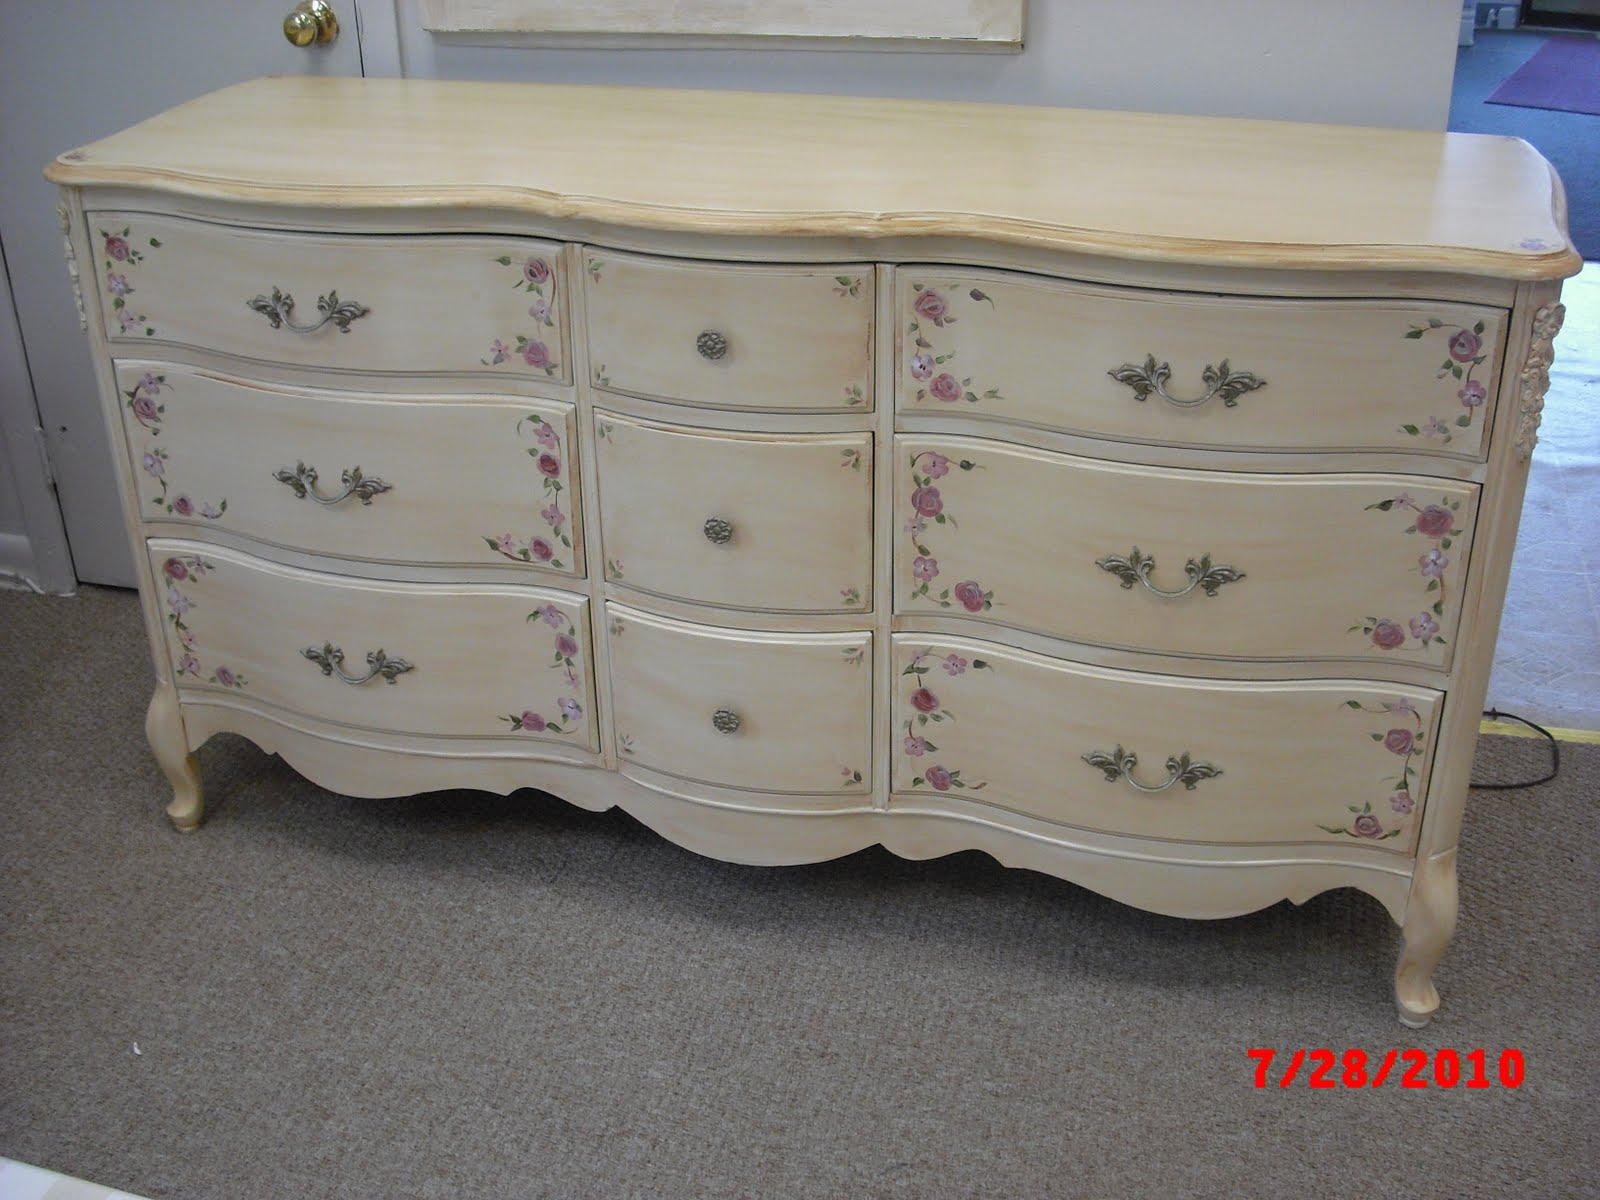 White Antique Dresser handpainted furniture blog, shabby chic vintage painted furniture